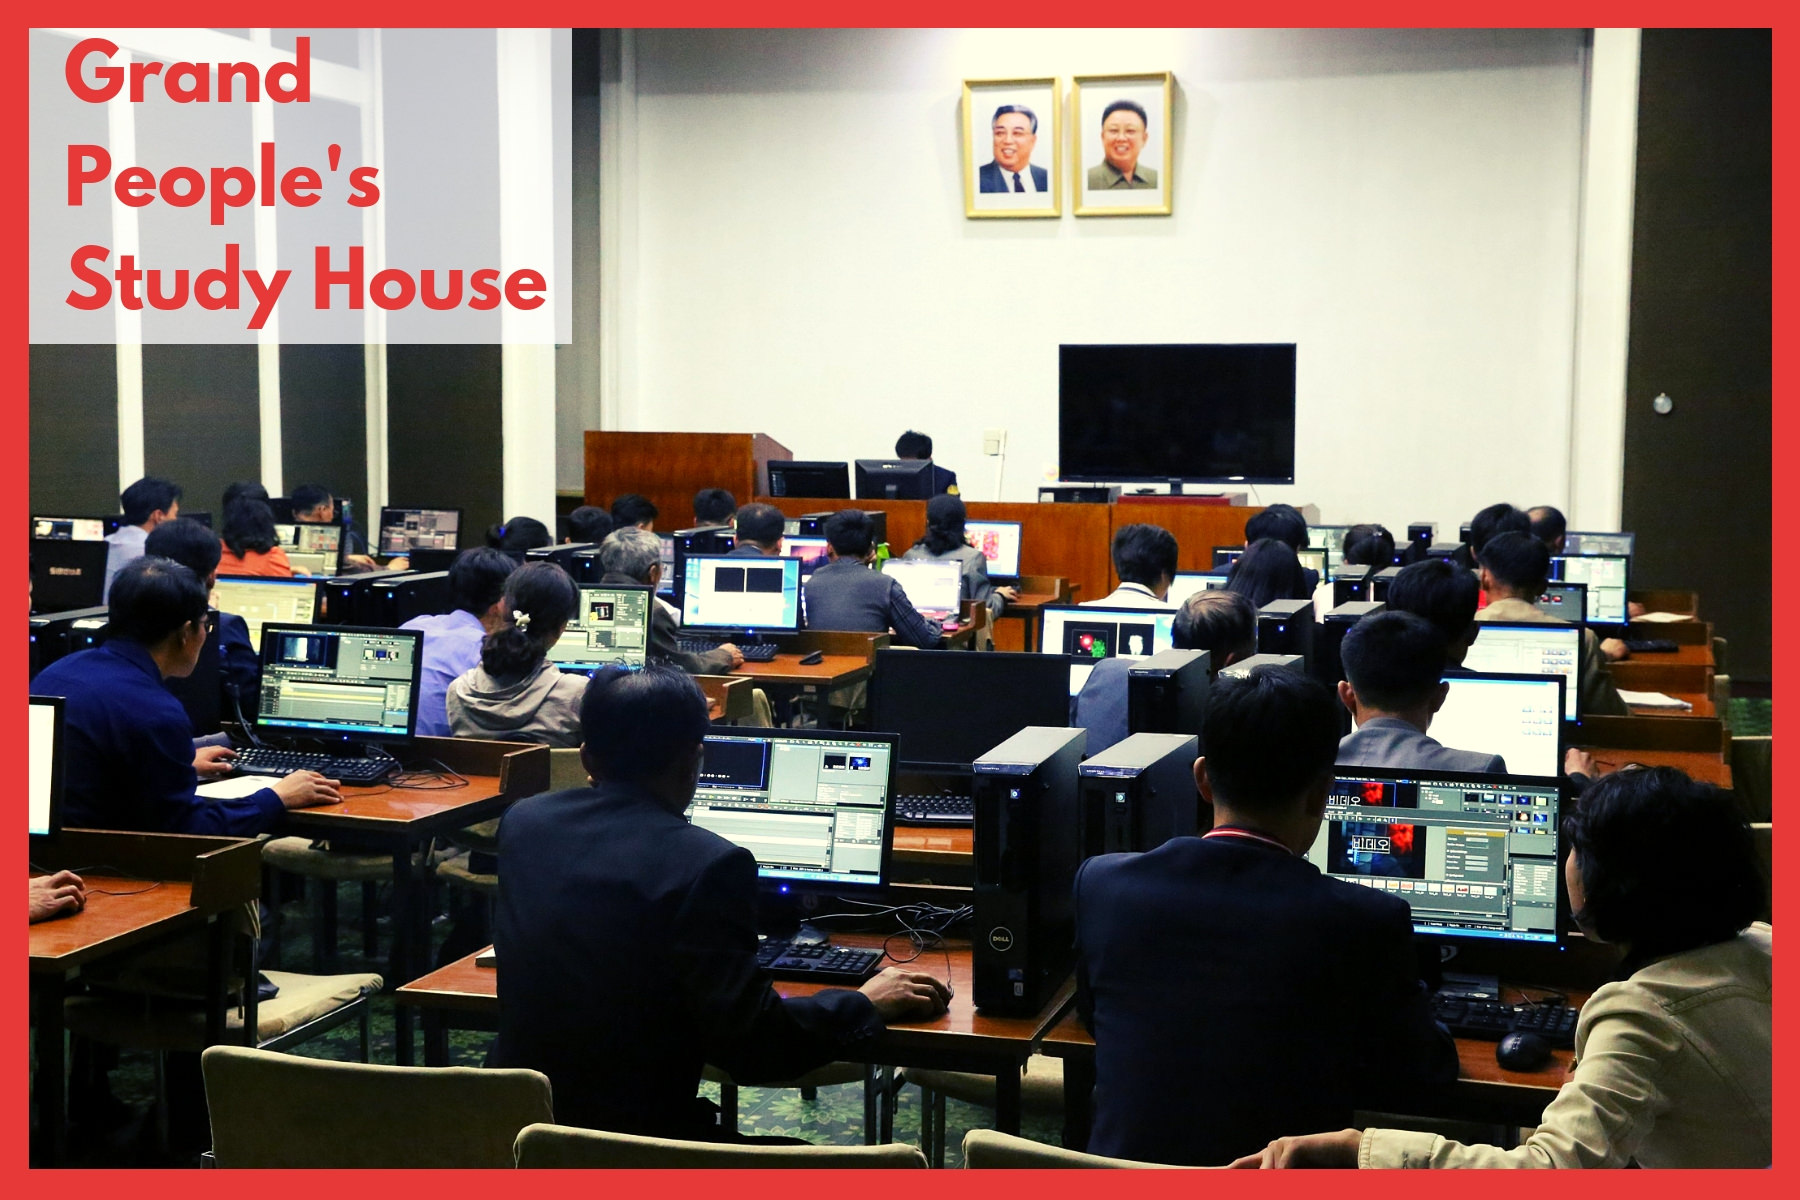 Lesson at the Grand People's Study House in Pyongyang, North Korea. Picture taken by a KTG traveller. The Grand People's Study House is a study centre and library. Lessons and lectures are held here for workers, students, etc